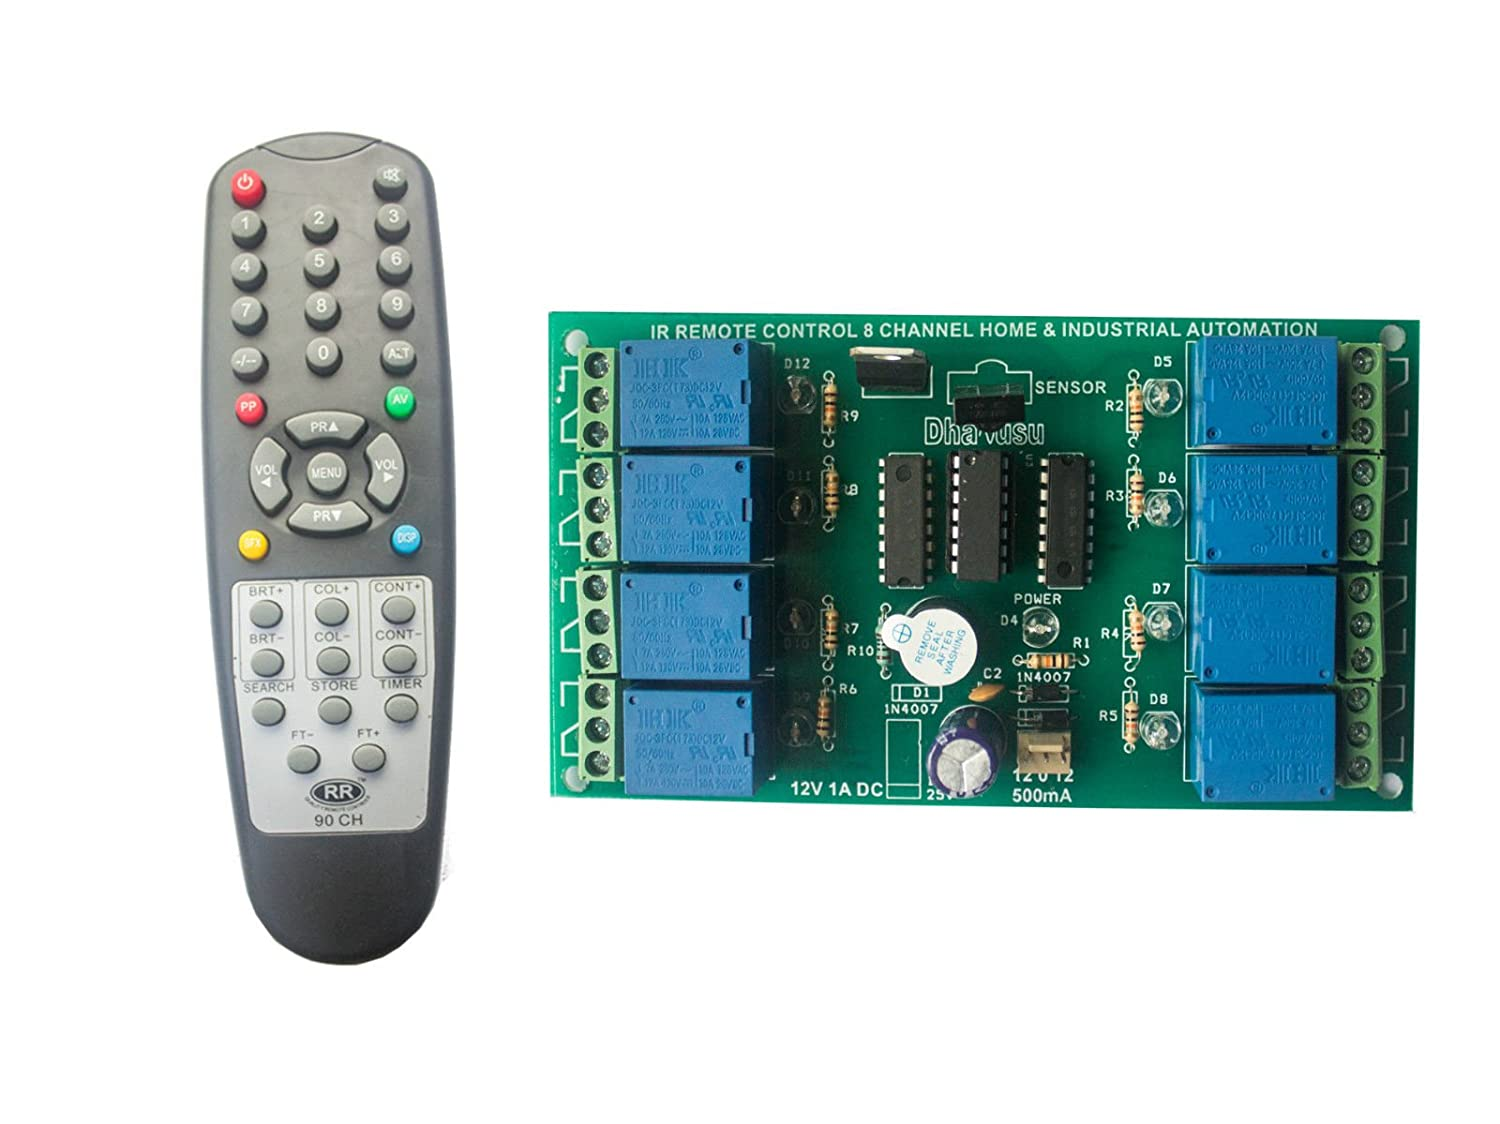 Wireless Infrared Ir Remote Control 8 Channel Board Home Transmitter Integrated Circuit Industrial Automation Improvement